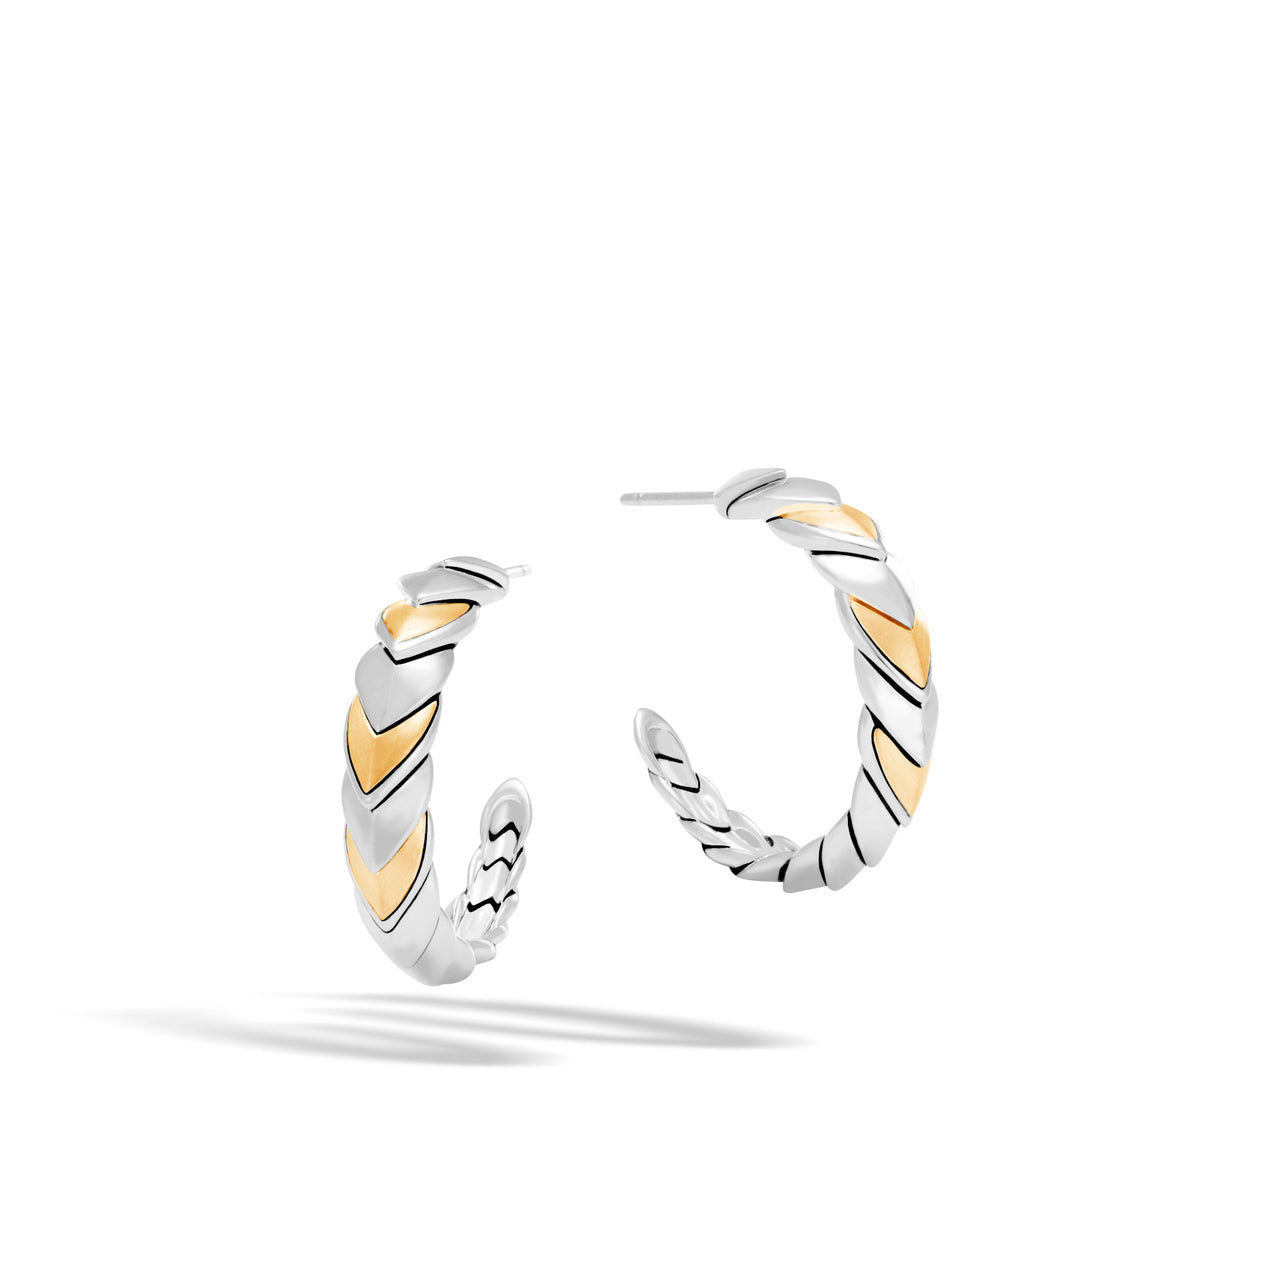 John Hardy Legends Naga Sterling Silver and Yellow Gold Small Hoop Earrings